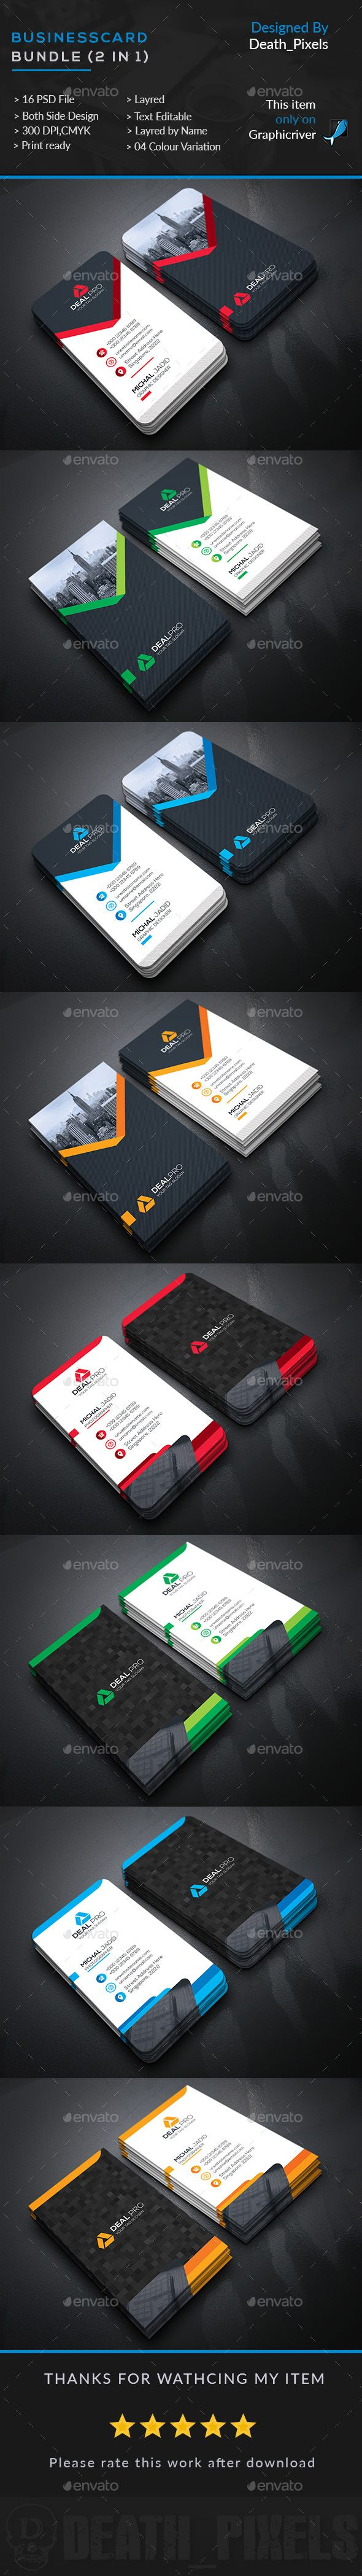 Business Card Bundle (2 in 1) Template PSD. Download here: http://graphicriver.net/item/business-card-bundle-2-in-1/16103007?ref=ksioks